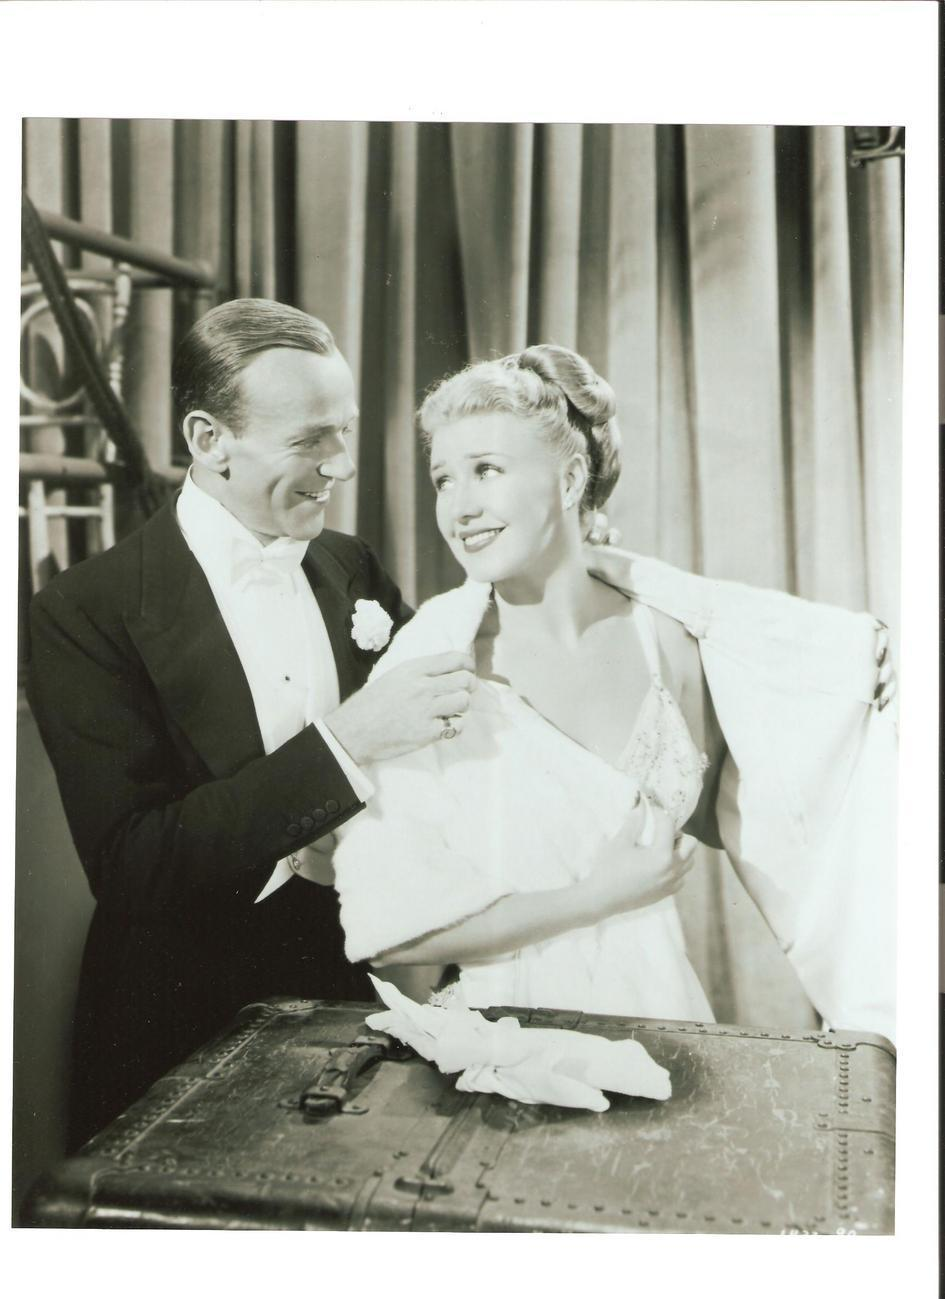 Fred Astaire & Ginger Rogers 8x10 Photo